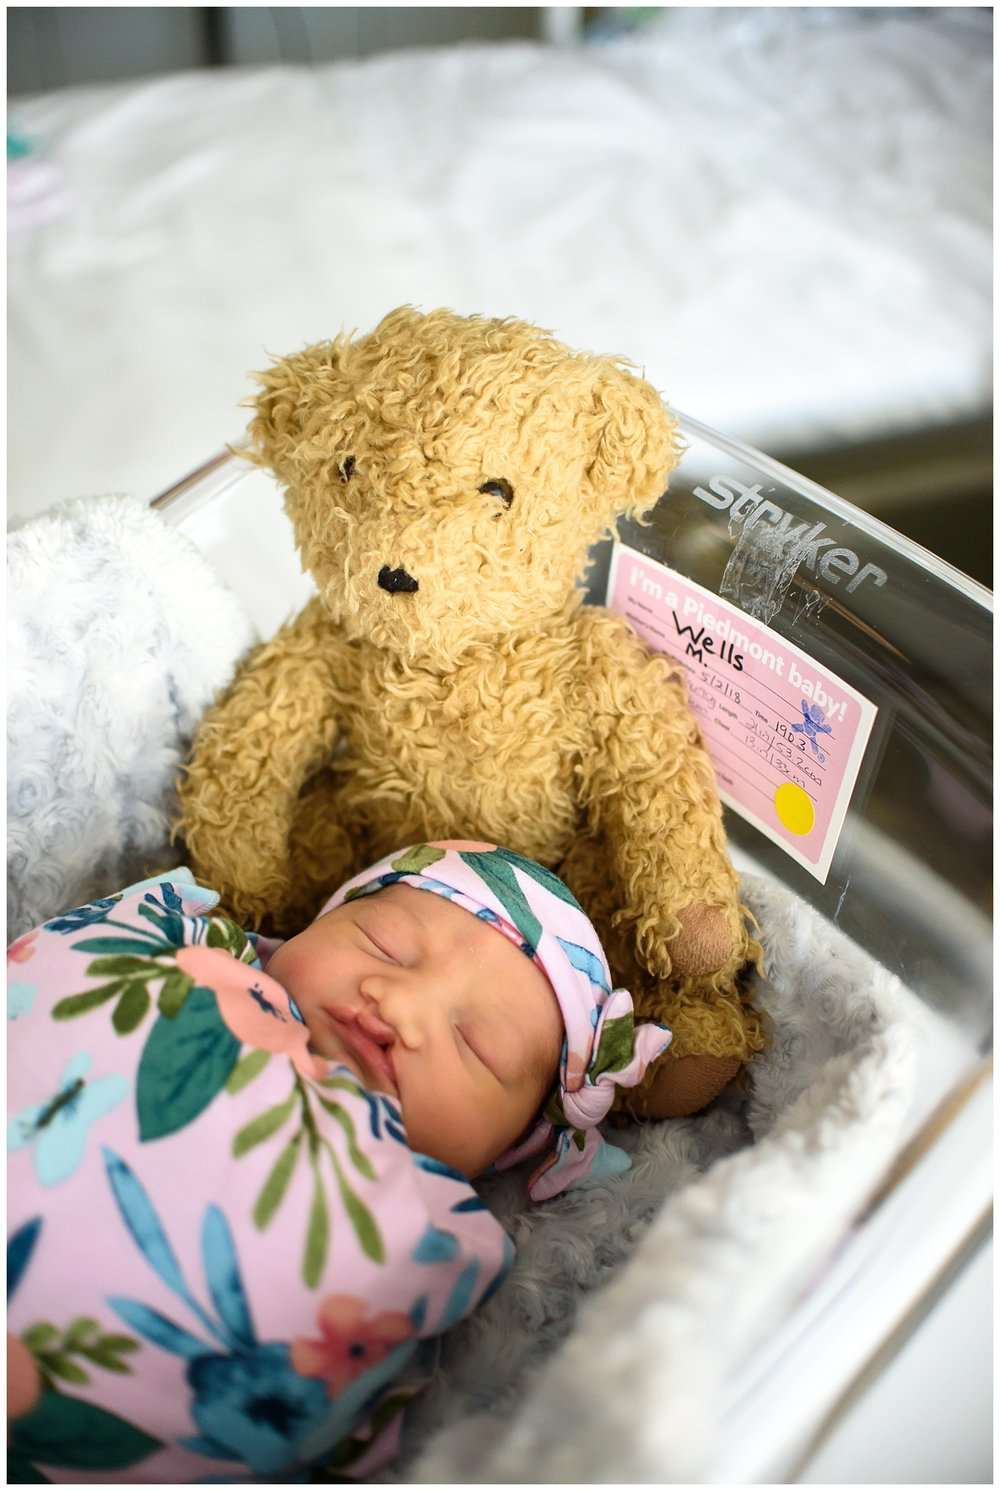 this is an image of a newborn baby girl laying in a hospital bassinet. she is sleeping and there is a family teddy bear next to her in the bassinet.